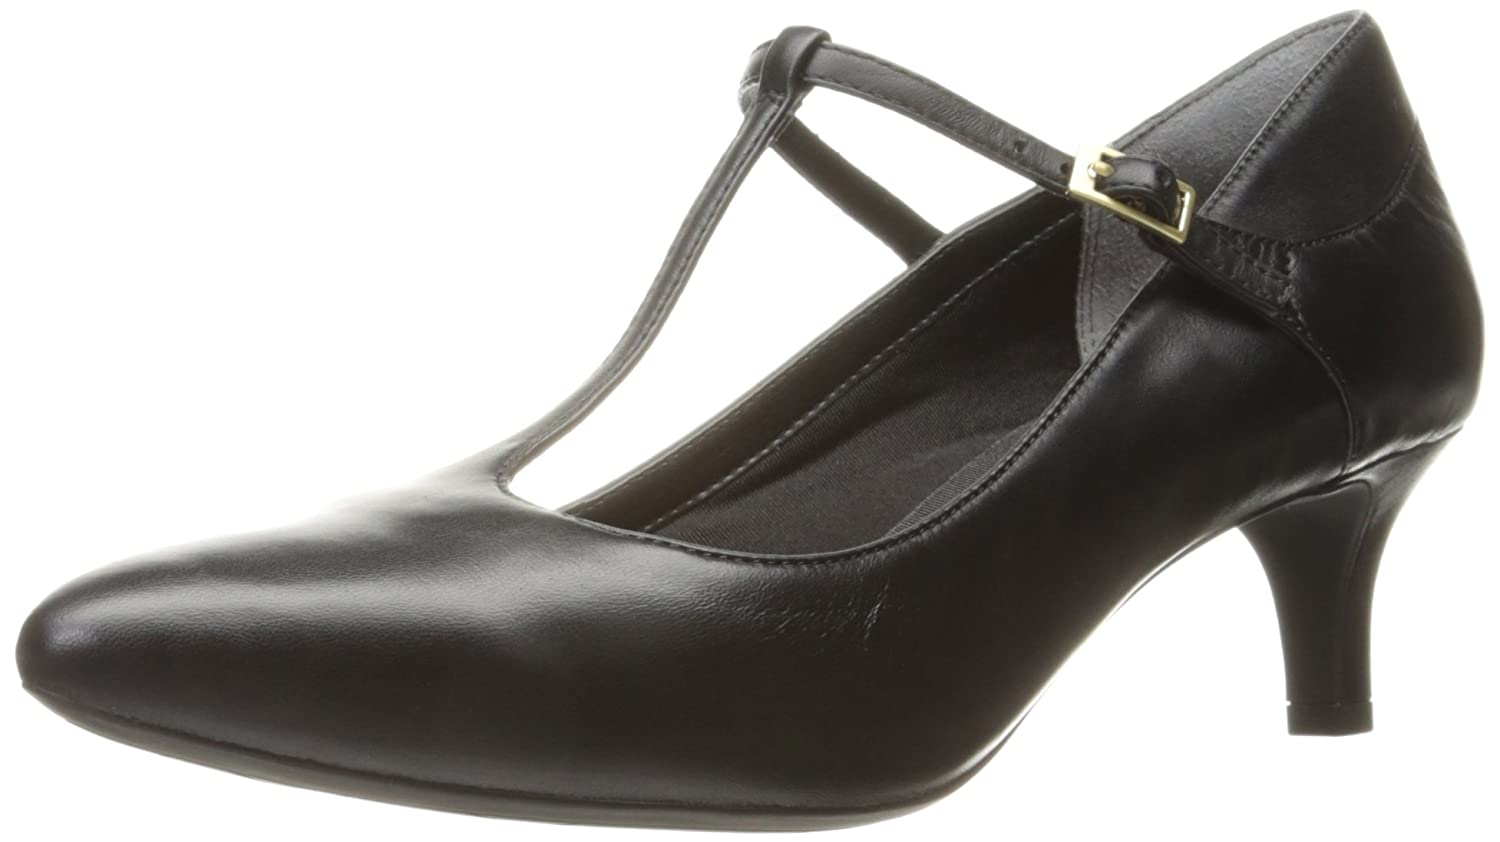 Rockport Women's Total Motion Kalila T-Strap Dress Pump B01ABS1V1C 9.5 B(M) US|Black Leather